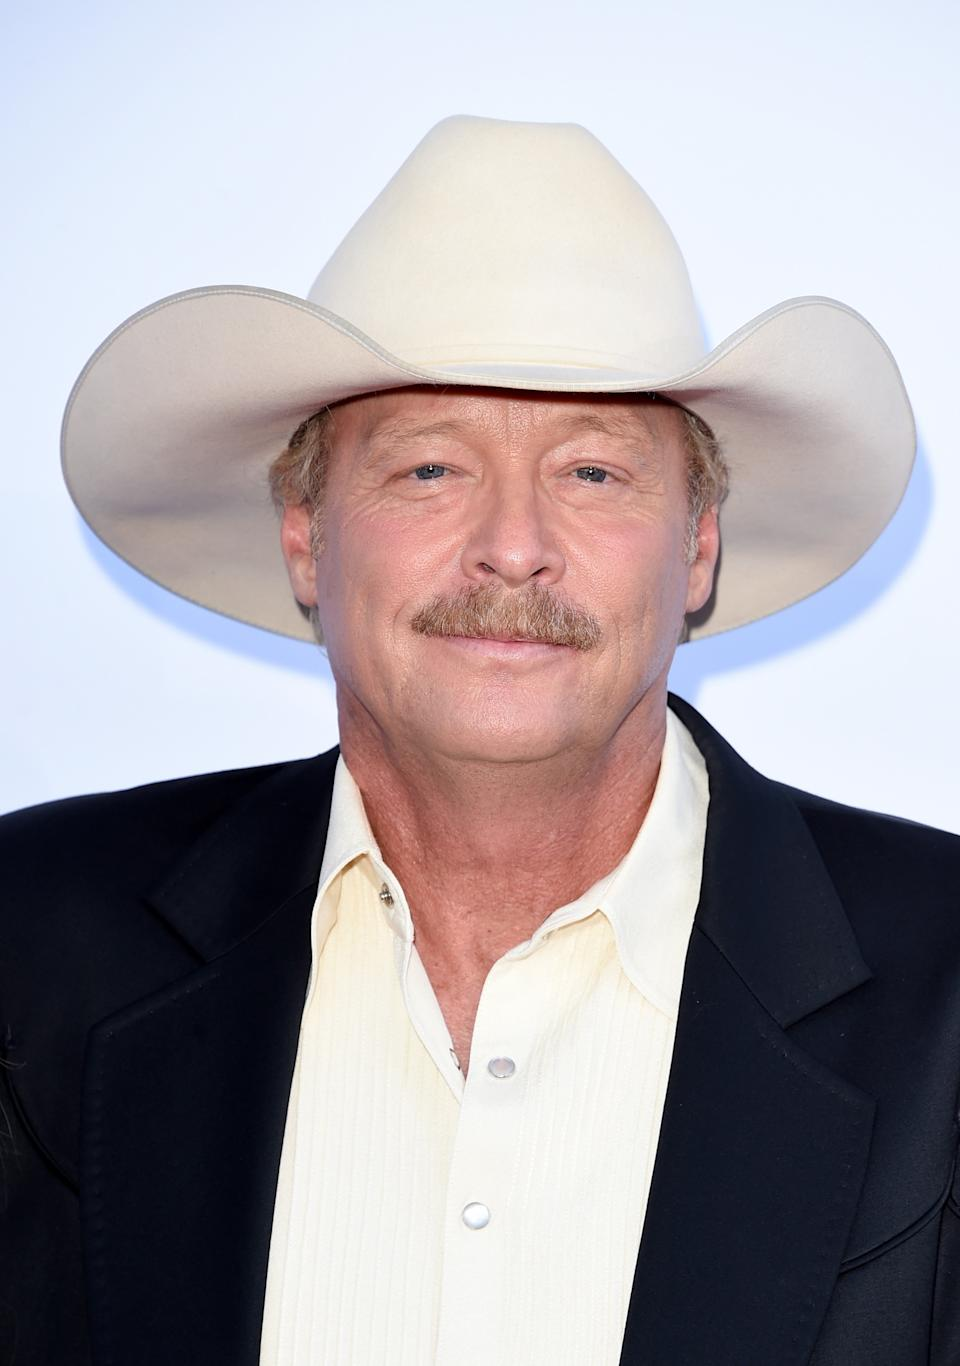 Alan Jackson says CMT, a degenerative condition that effects the muscles and nerves, has made performing difficult. (Image via Getty Images).